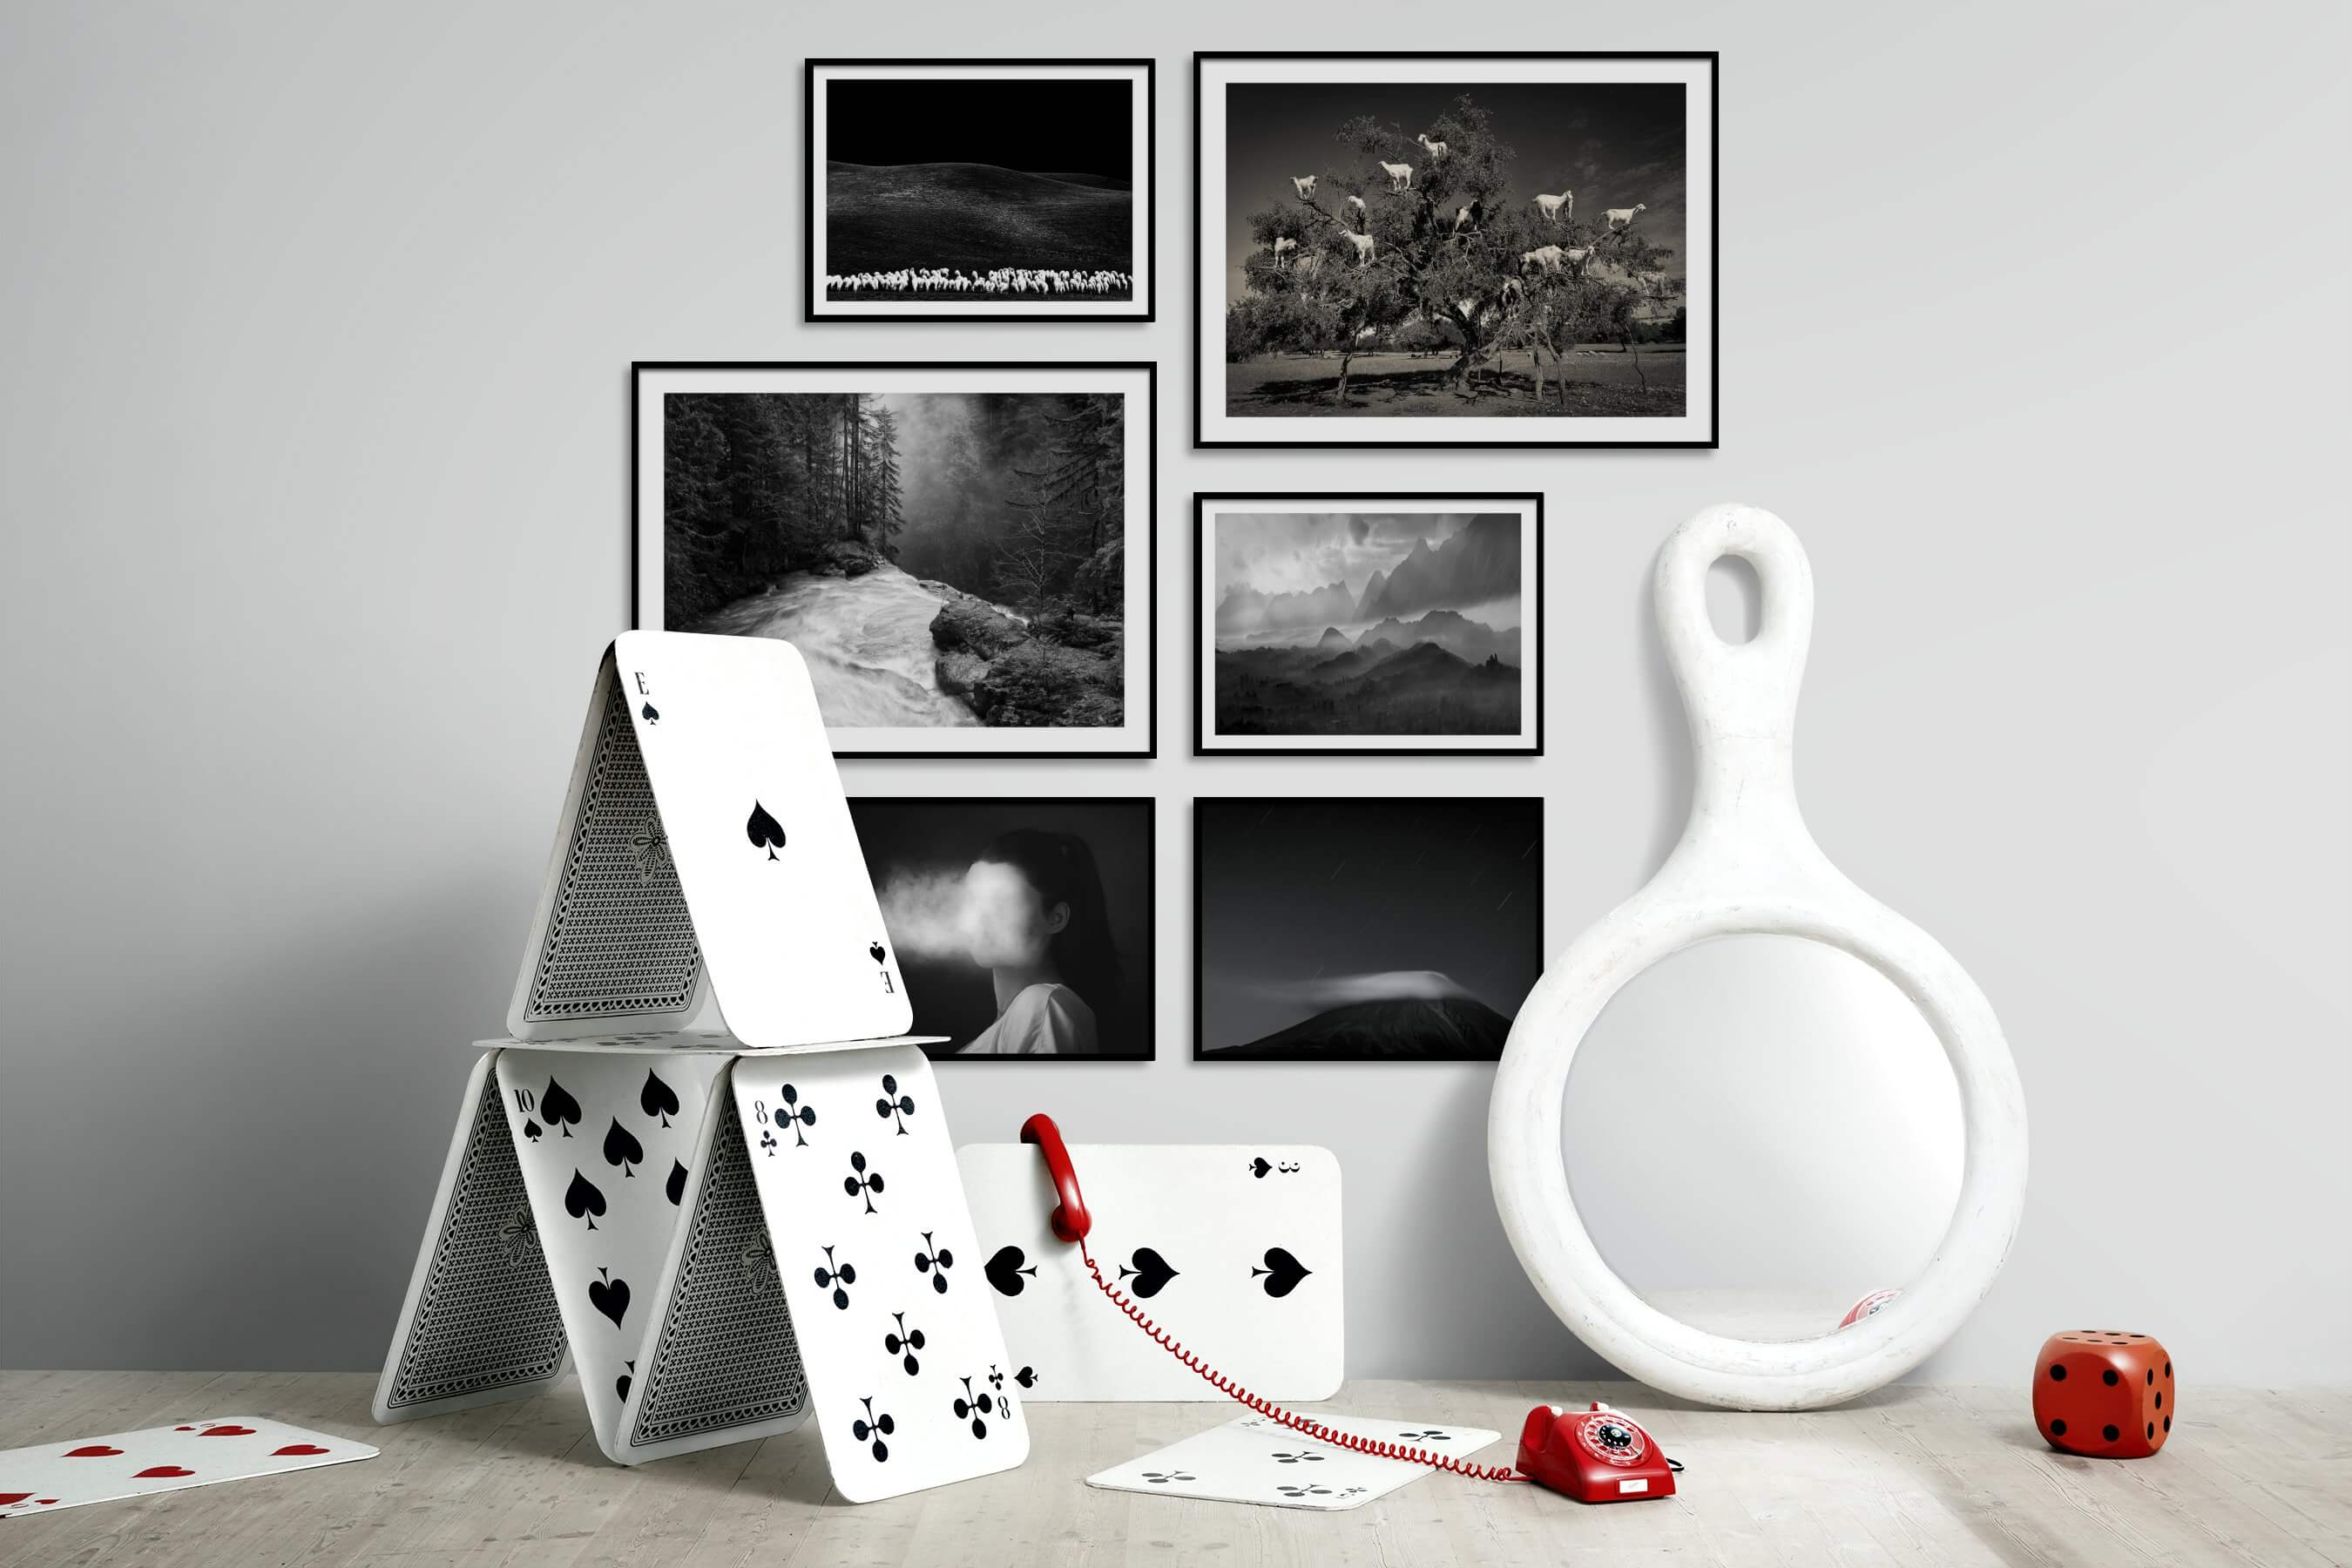 Gallery wall idea with six framed pictures arranged on a wall depicting Black & White, Animals, Country Life, Nature, Artsy, Dark Tones, For the Minimalist, and Mindfulness